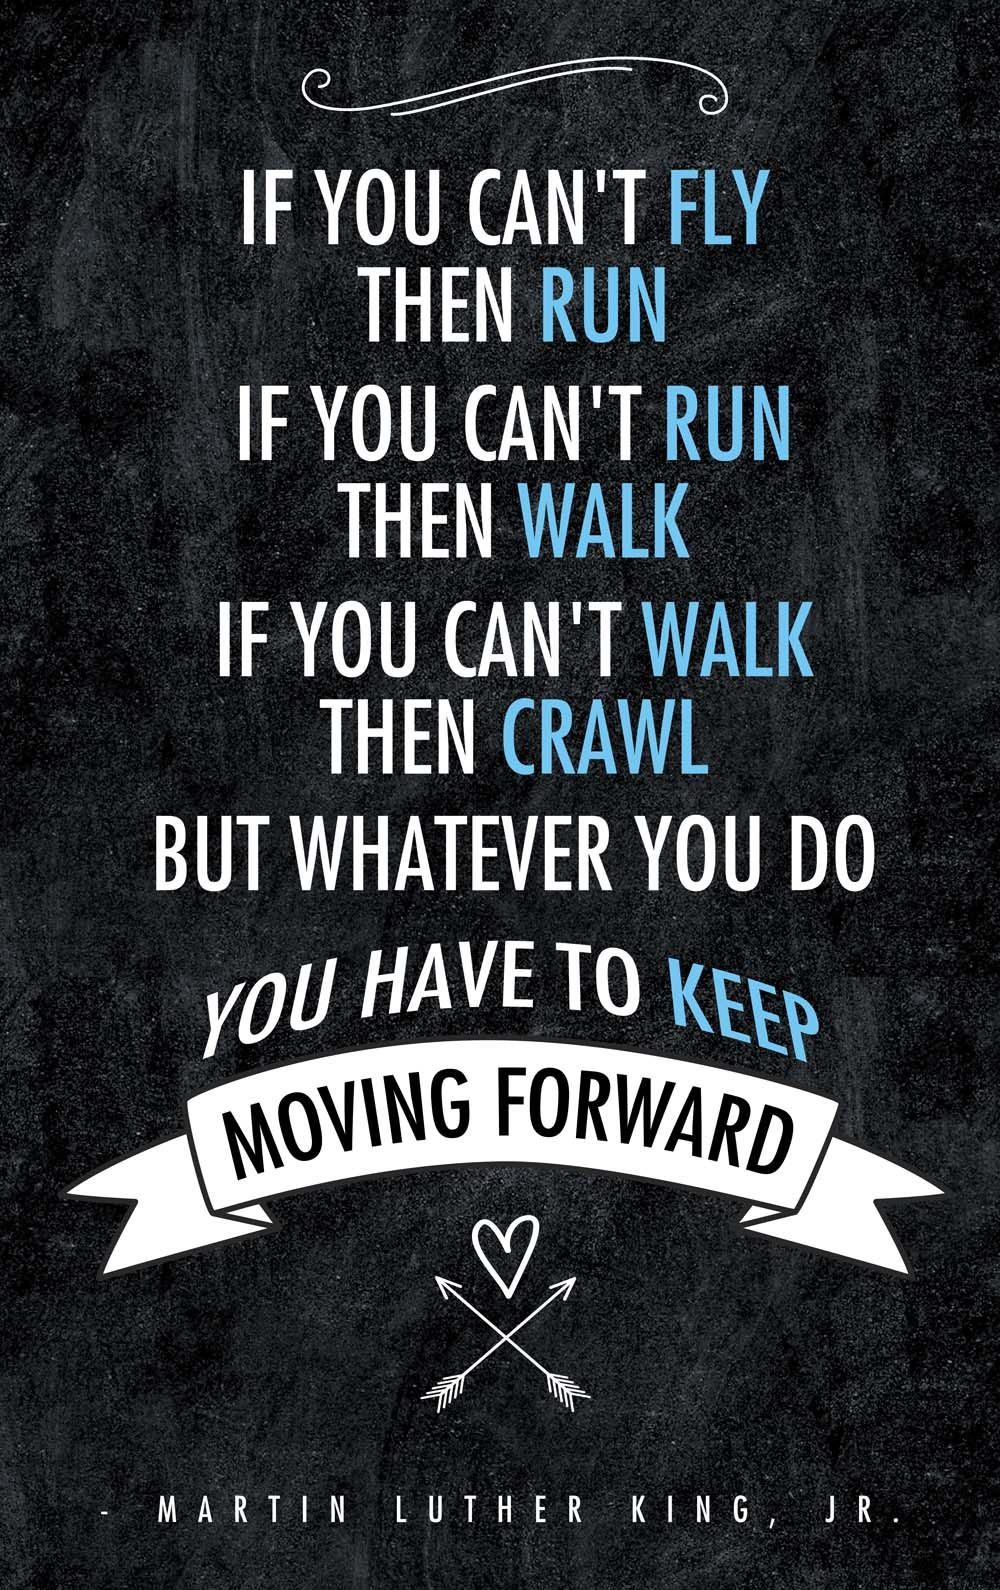 Quotes On Moving Forward Keep Moving Forward #quote #martinlutherking  Inspiration Quotes